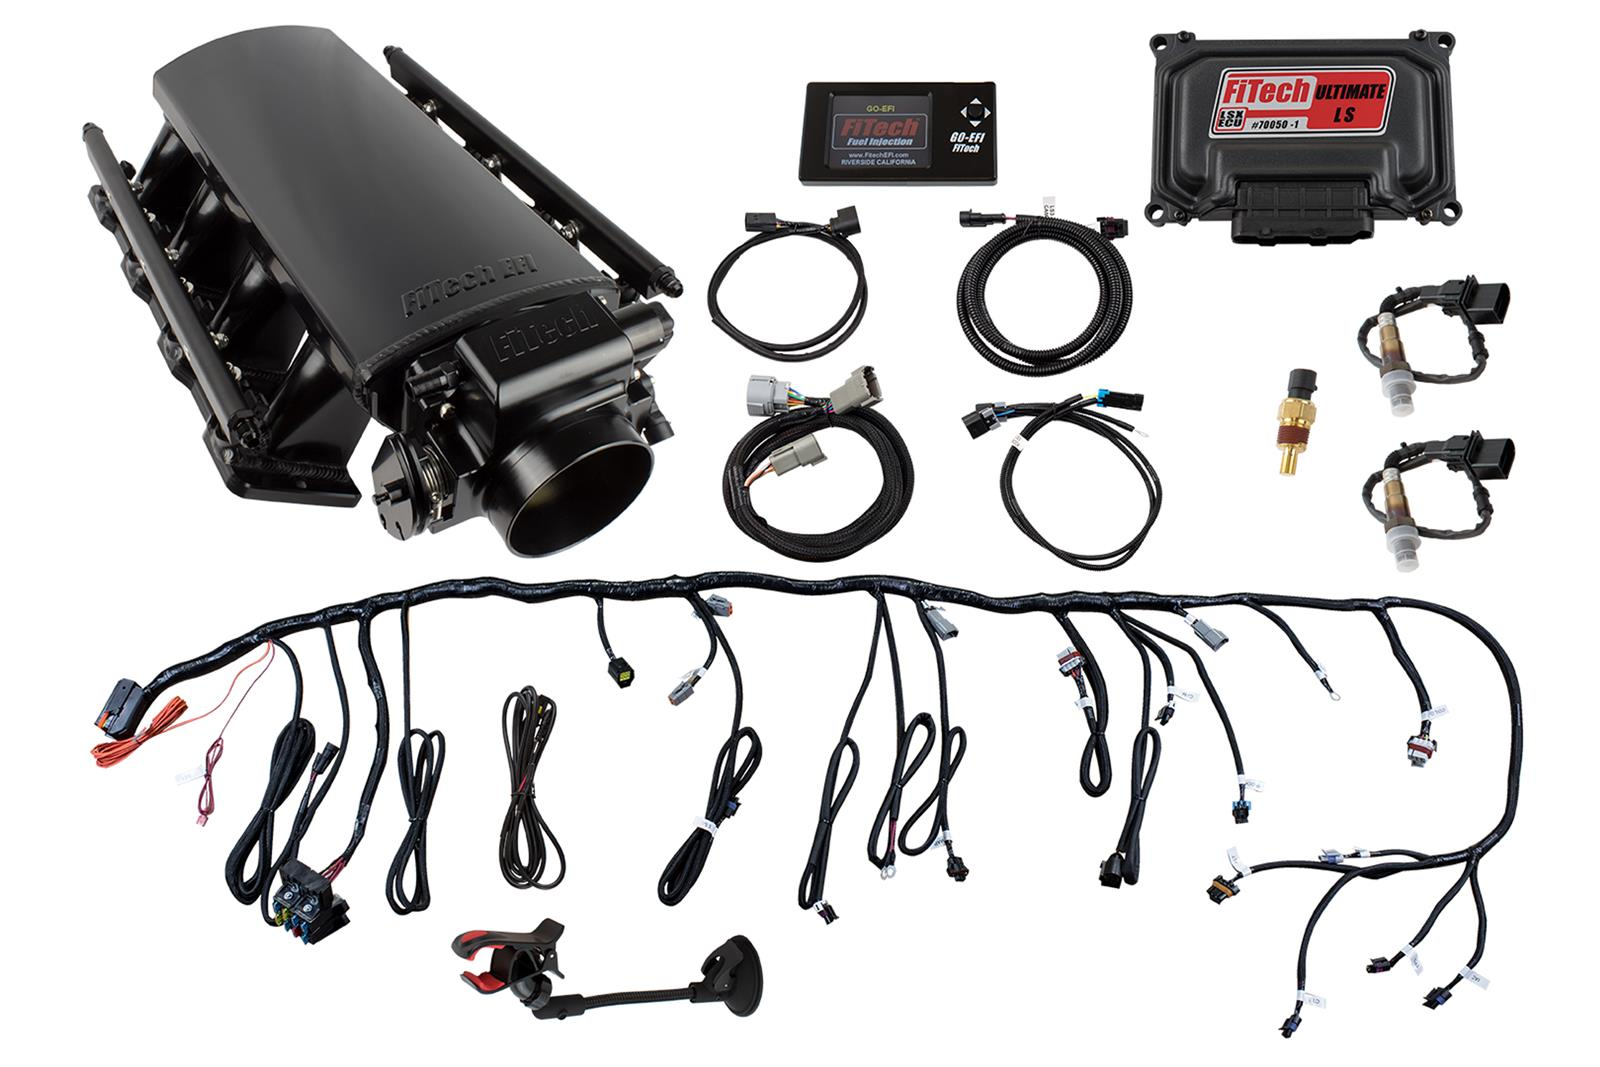 hight resolution of fitech ultimate ls efi 500 hp fuel injection systems 70001 free shipping on orders over 99 at summit racing